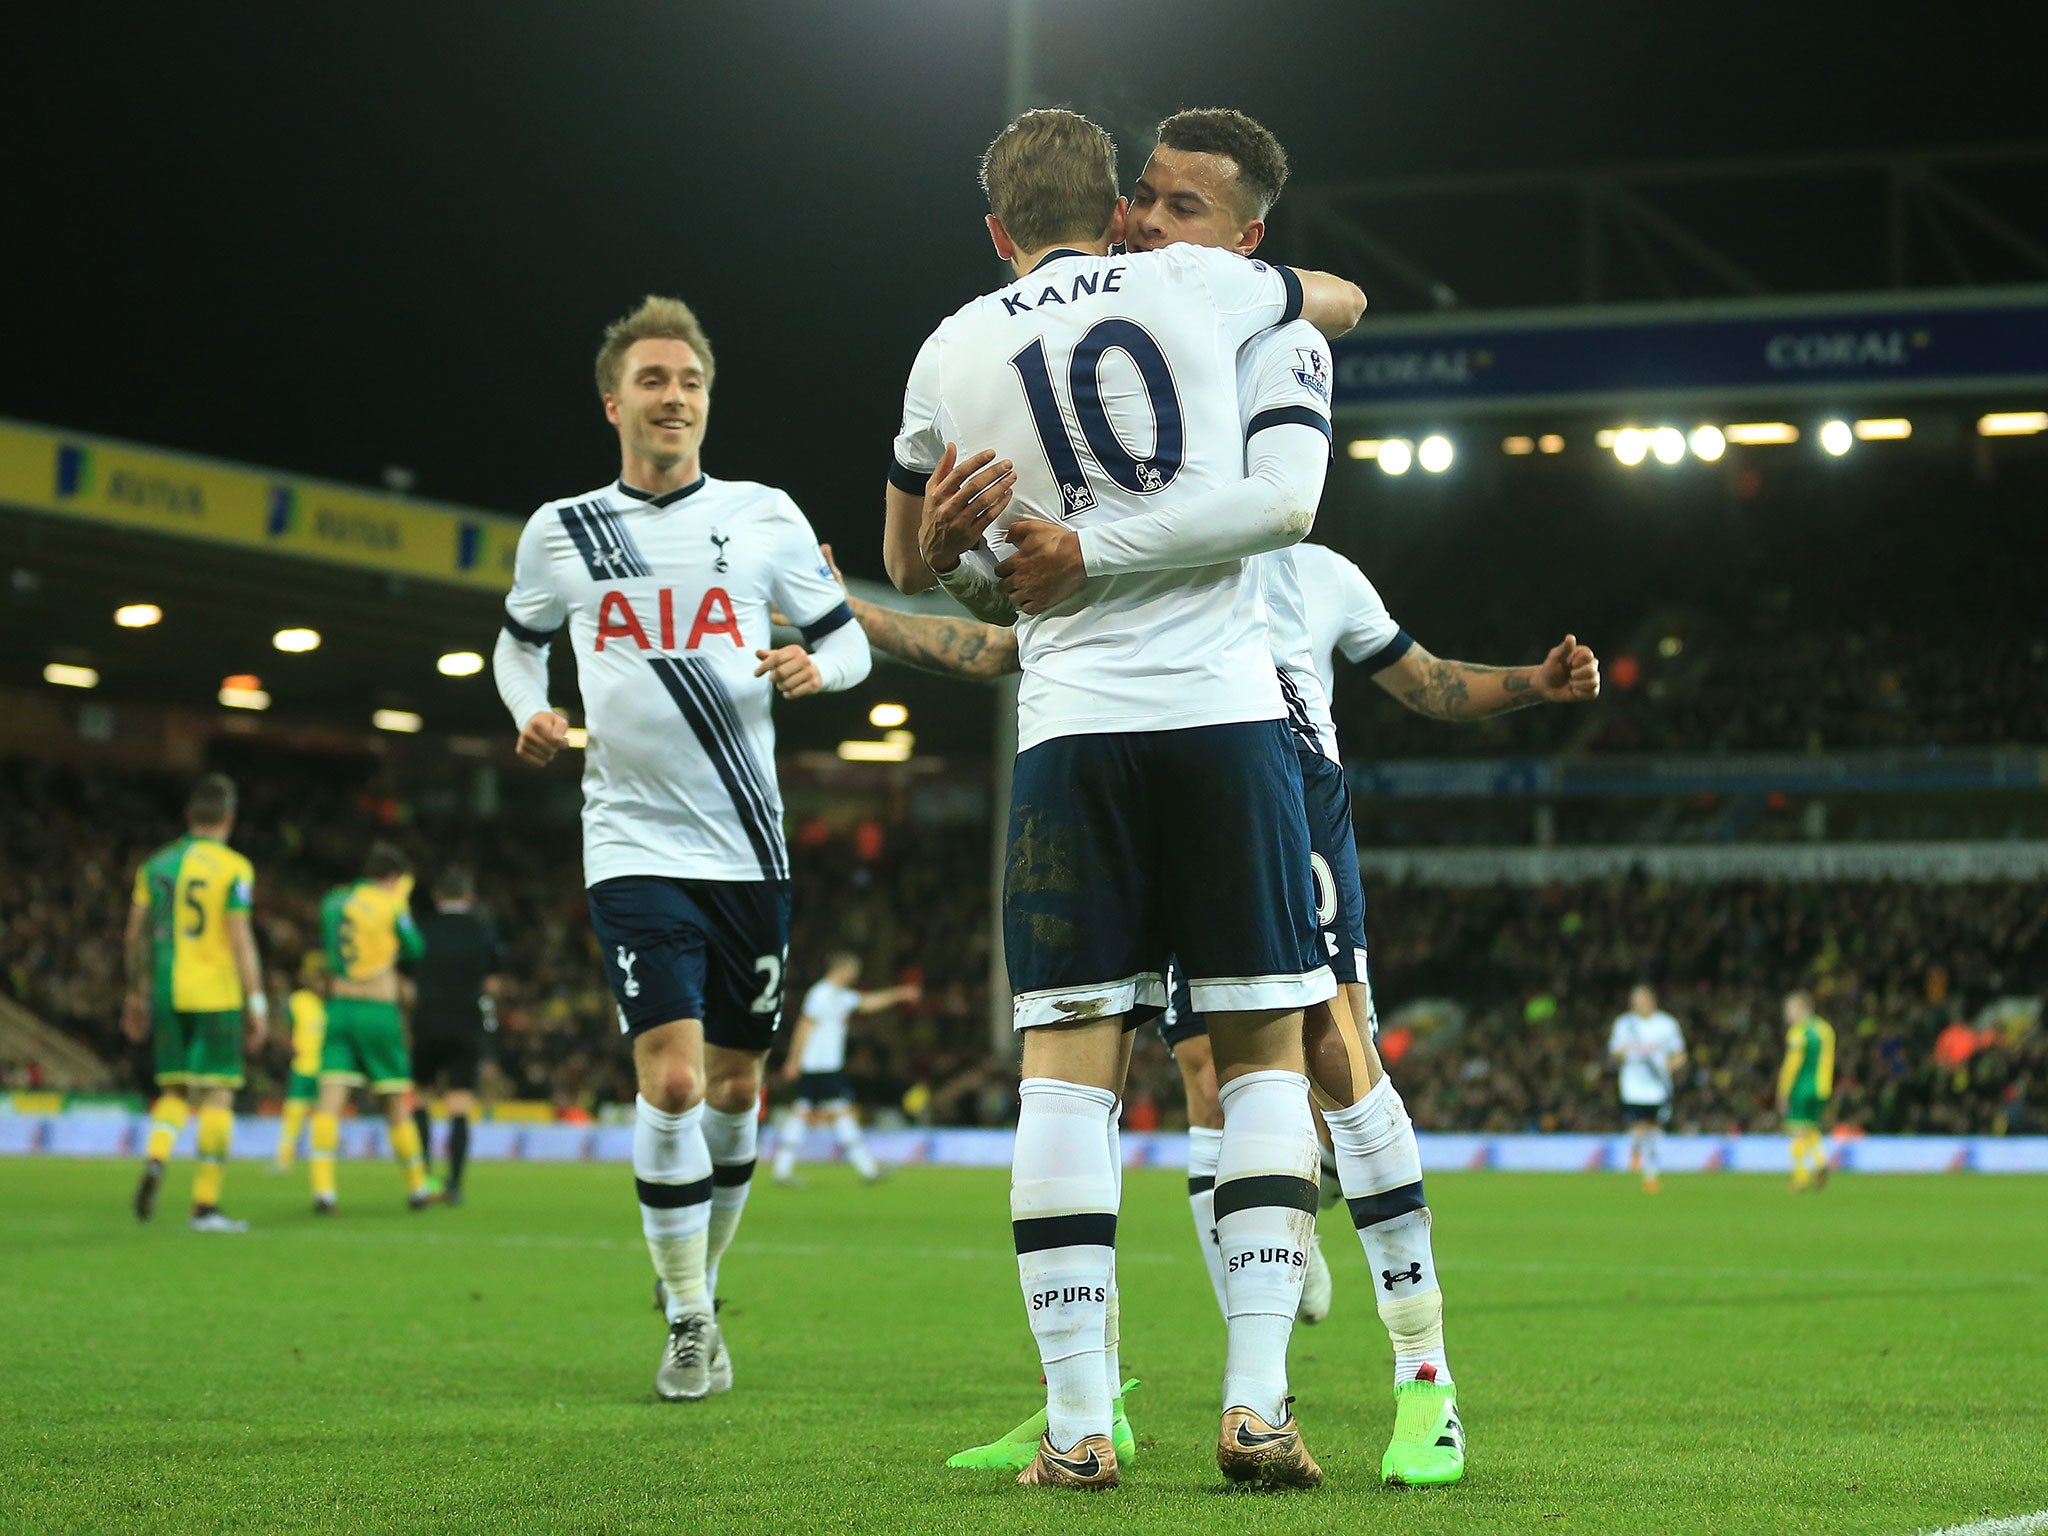 Norwich vs Tottenham match report: Harry Kane double adds to Dele Alli opener